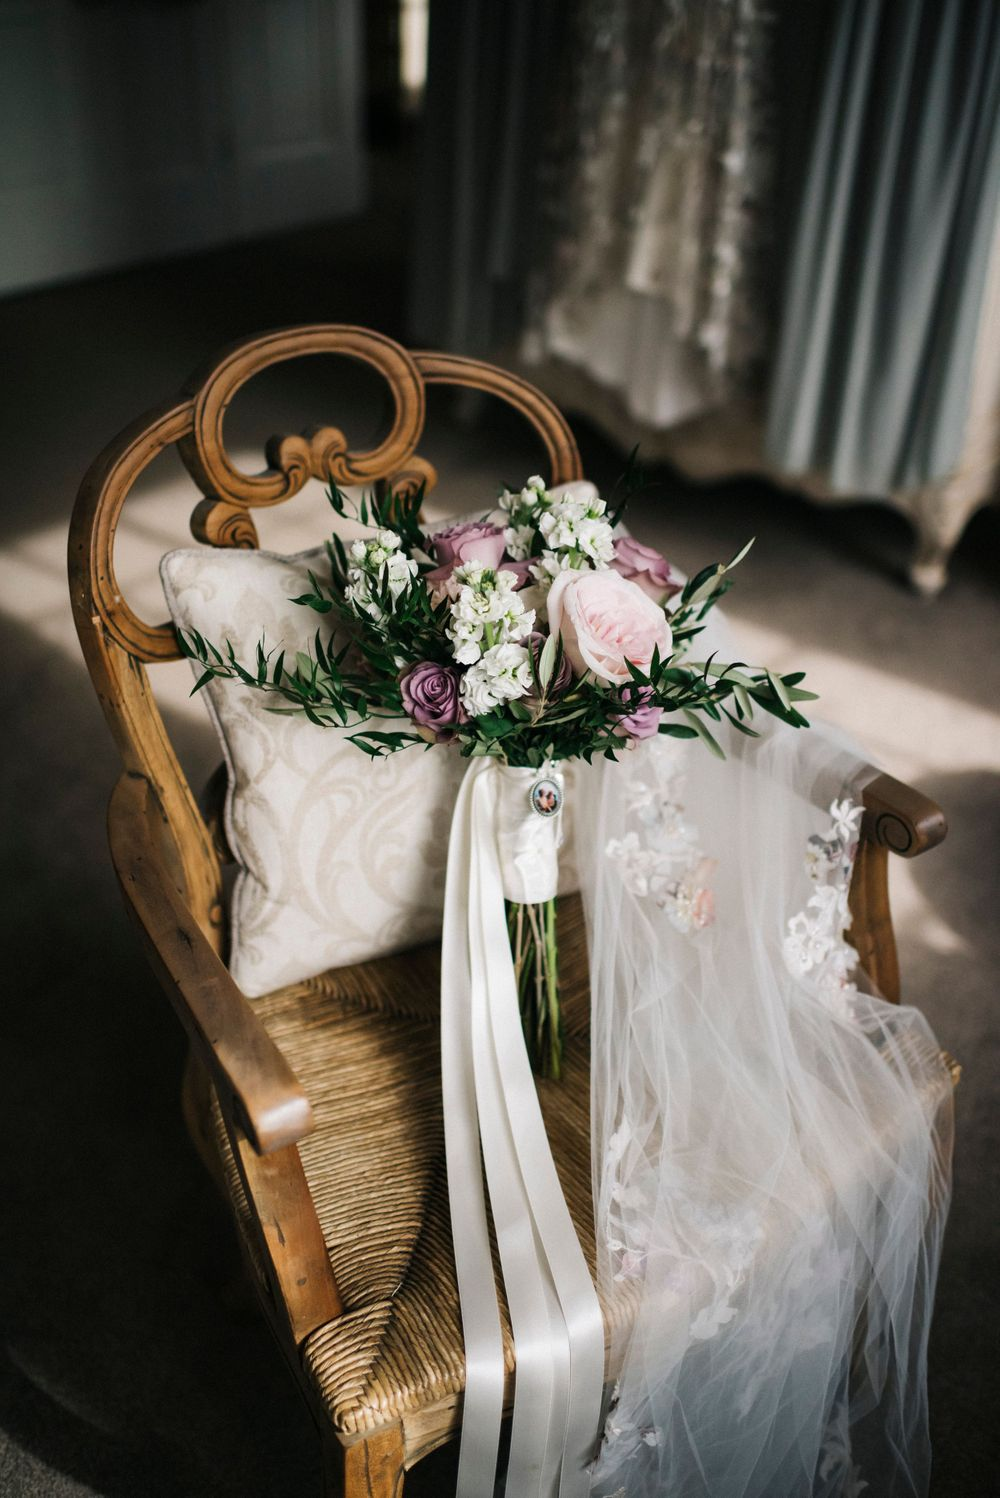 brides bouquet, summer wedding at eaves hall, eaves hall wedding, summer flowers, brides bouquet on chair